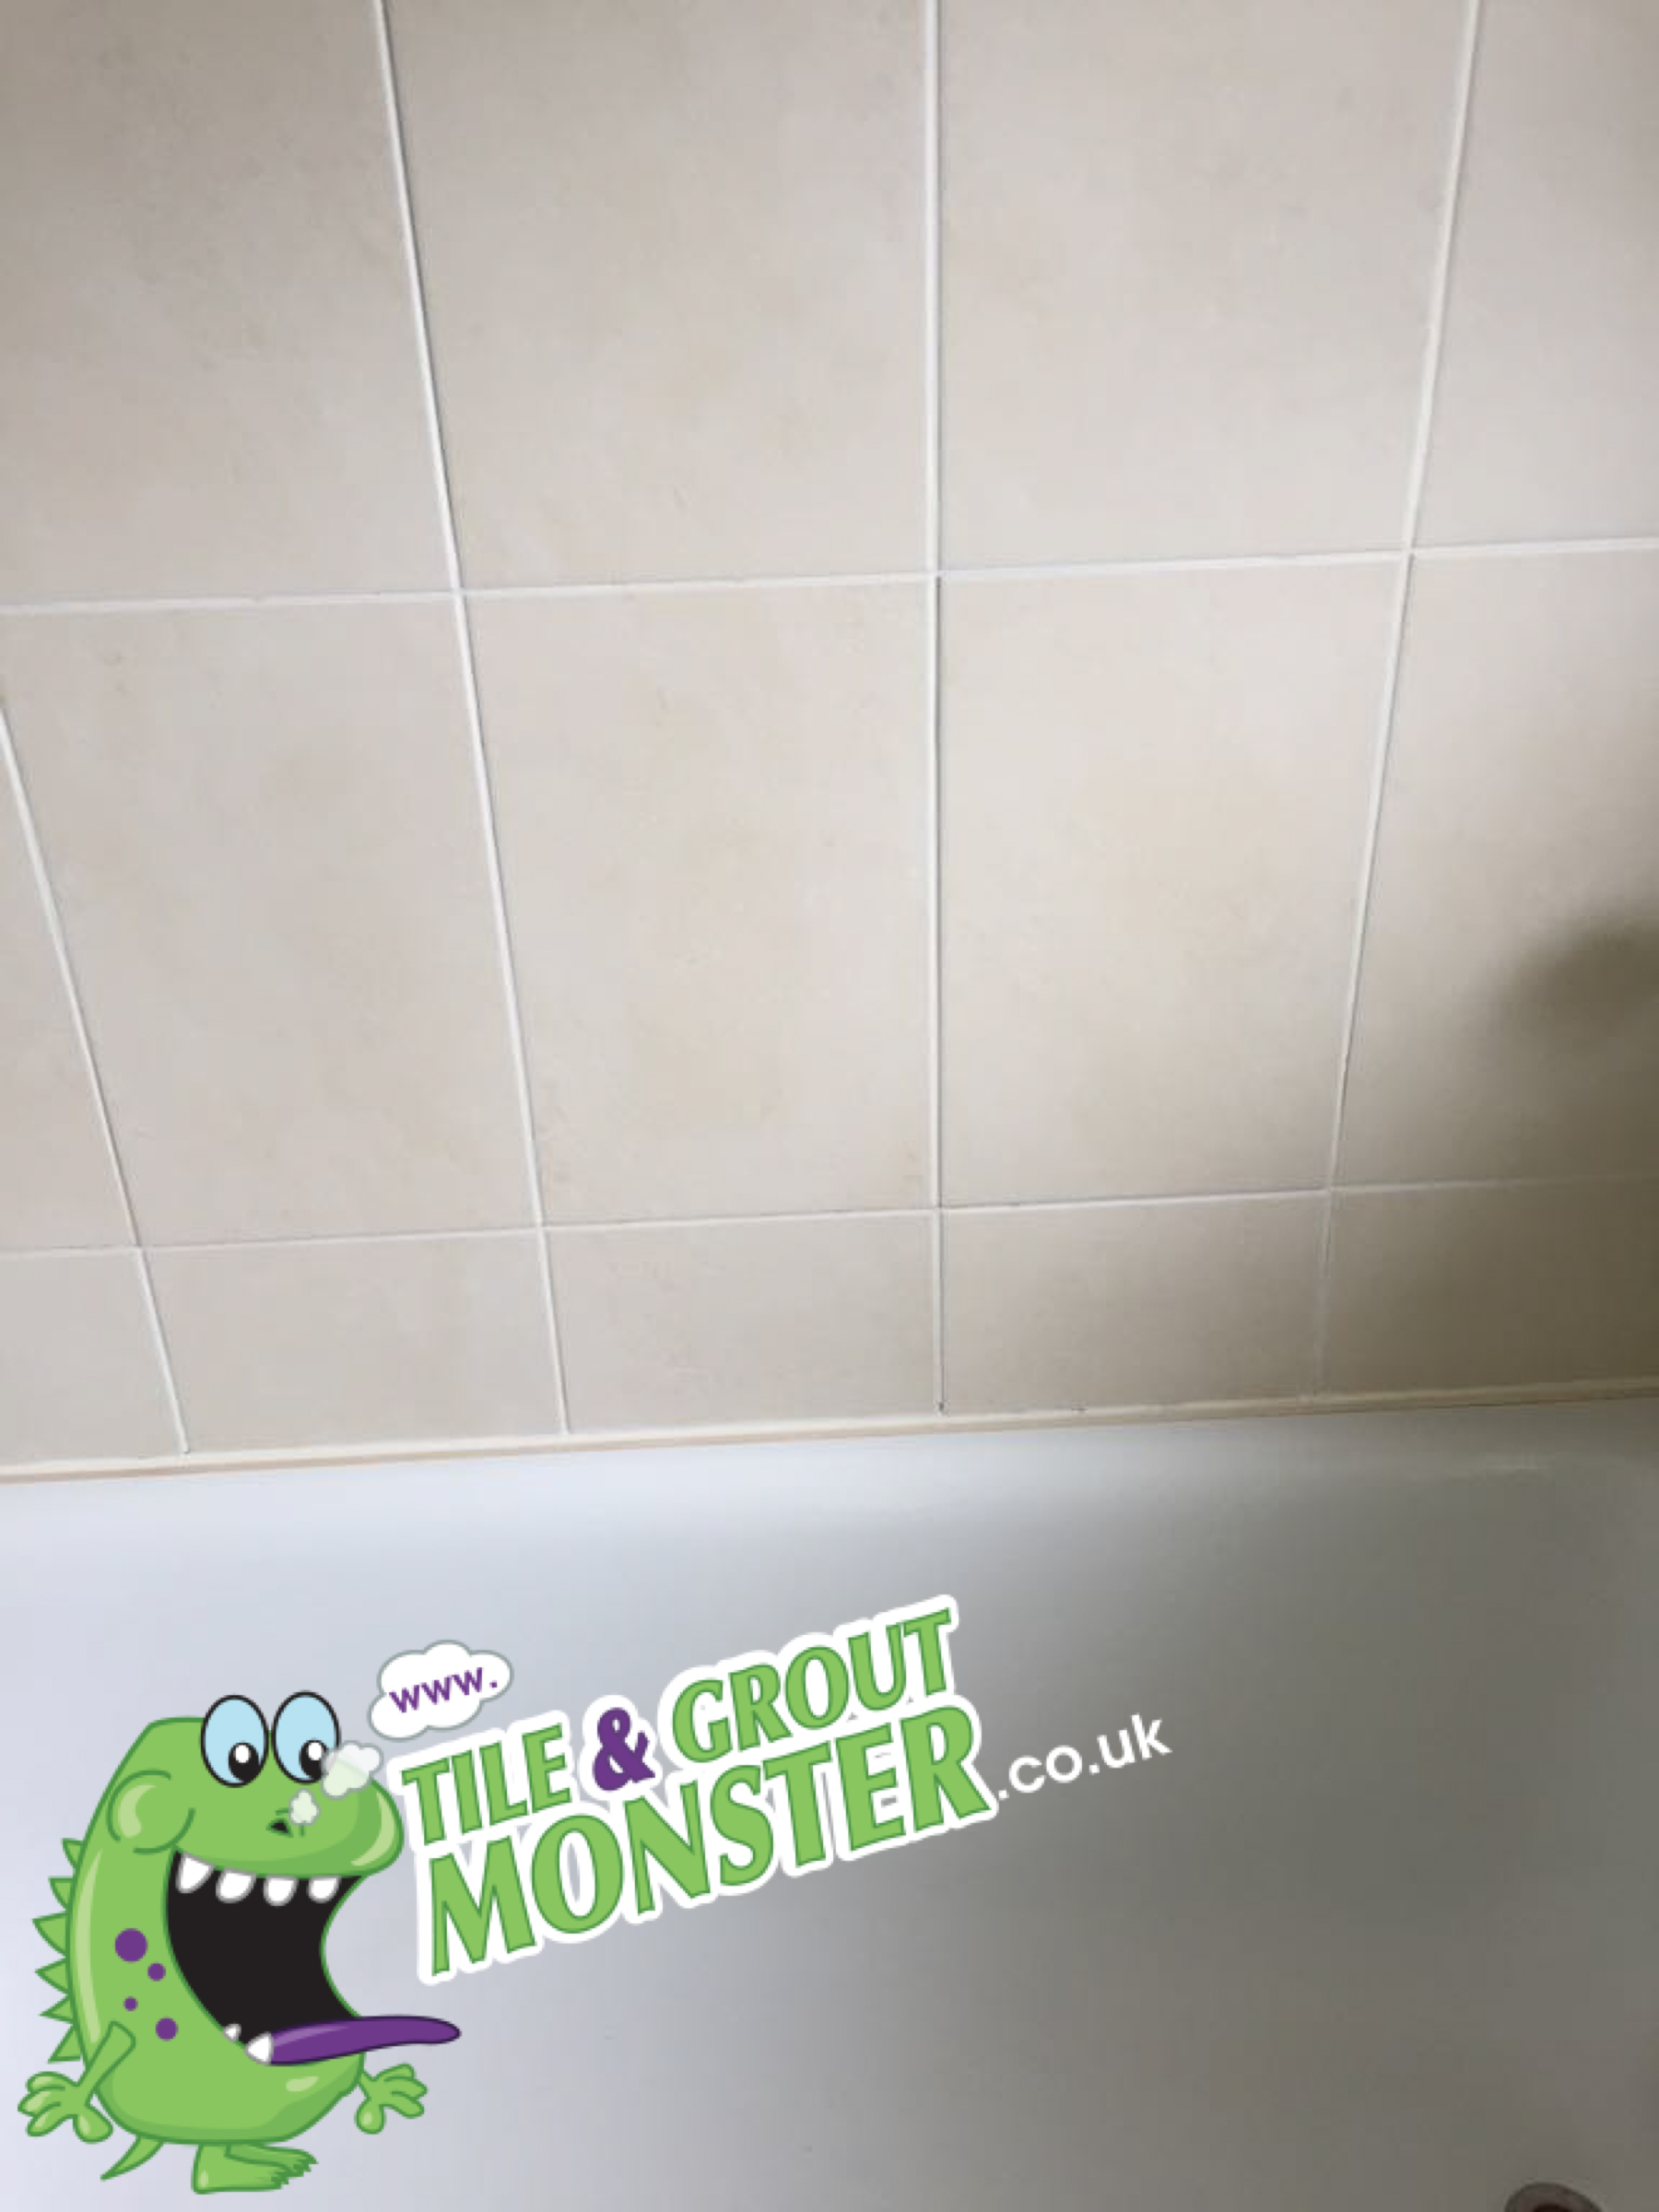 2 tile & grout monster bath 18 after CLEANING GROUT ...